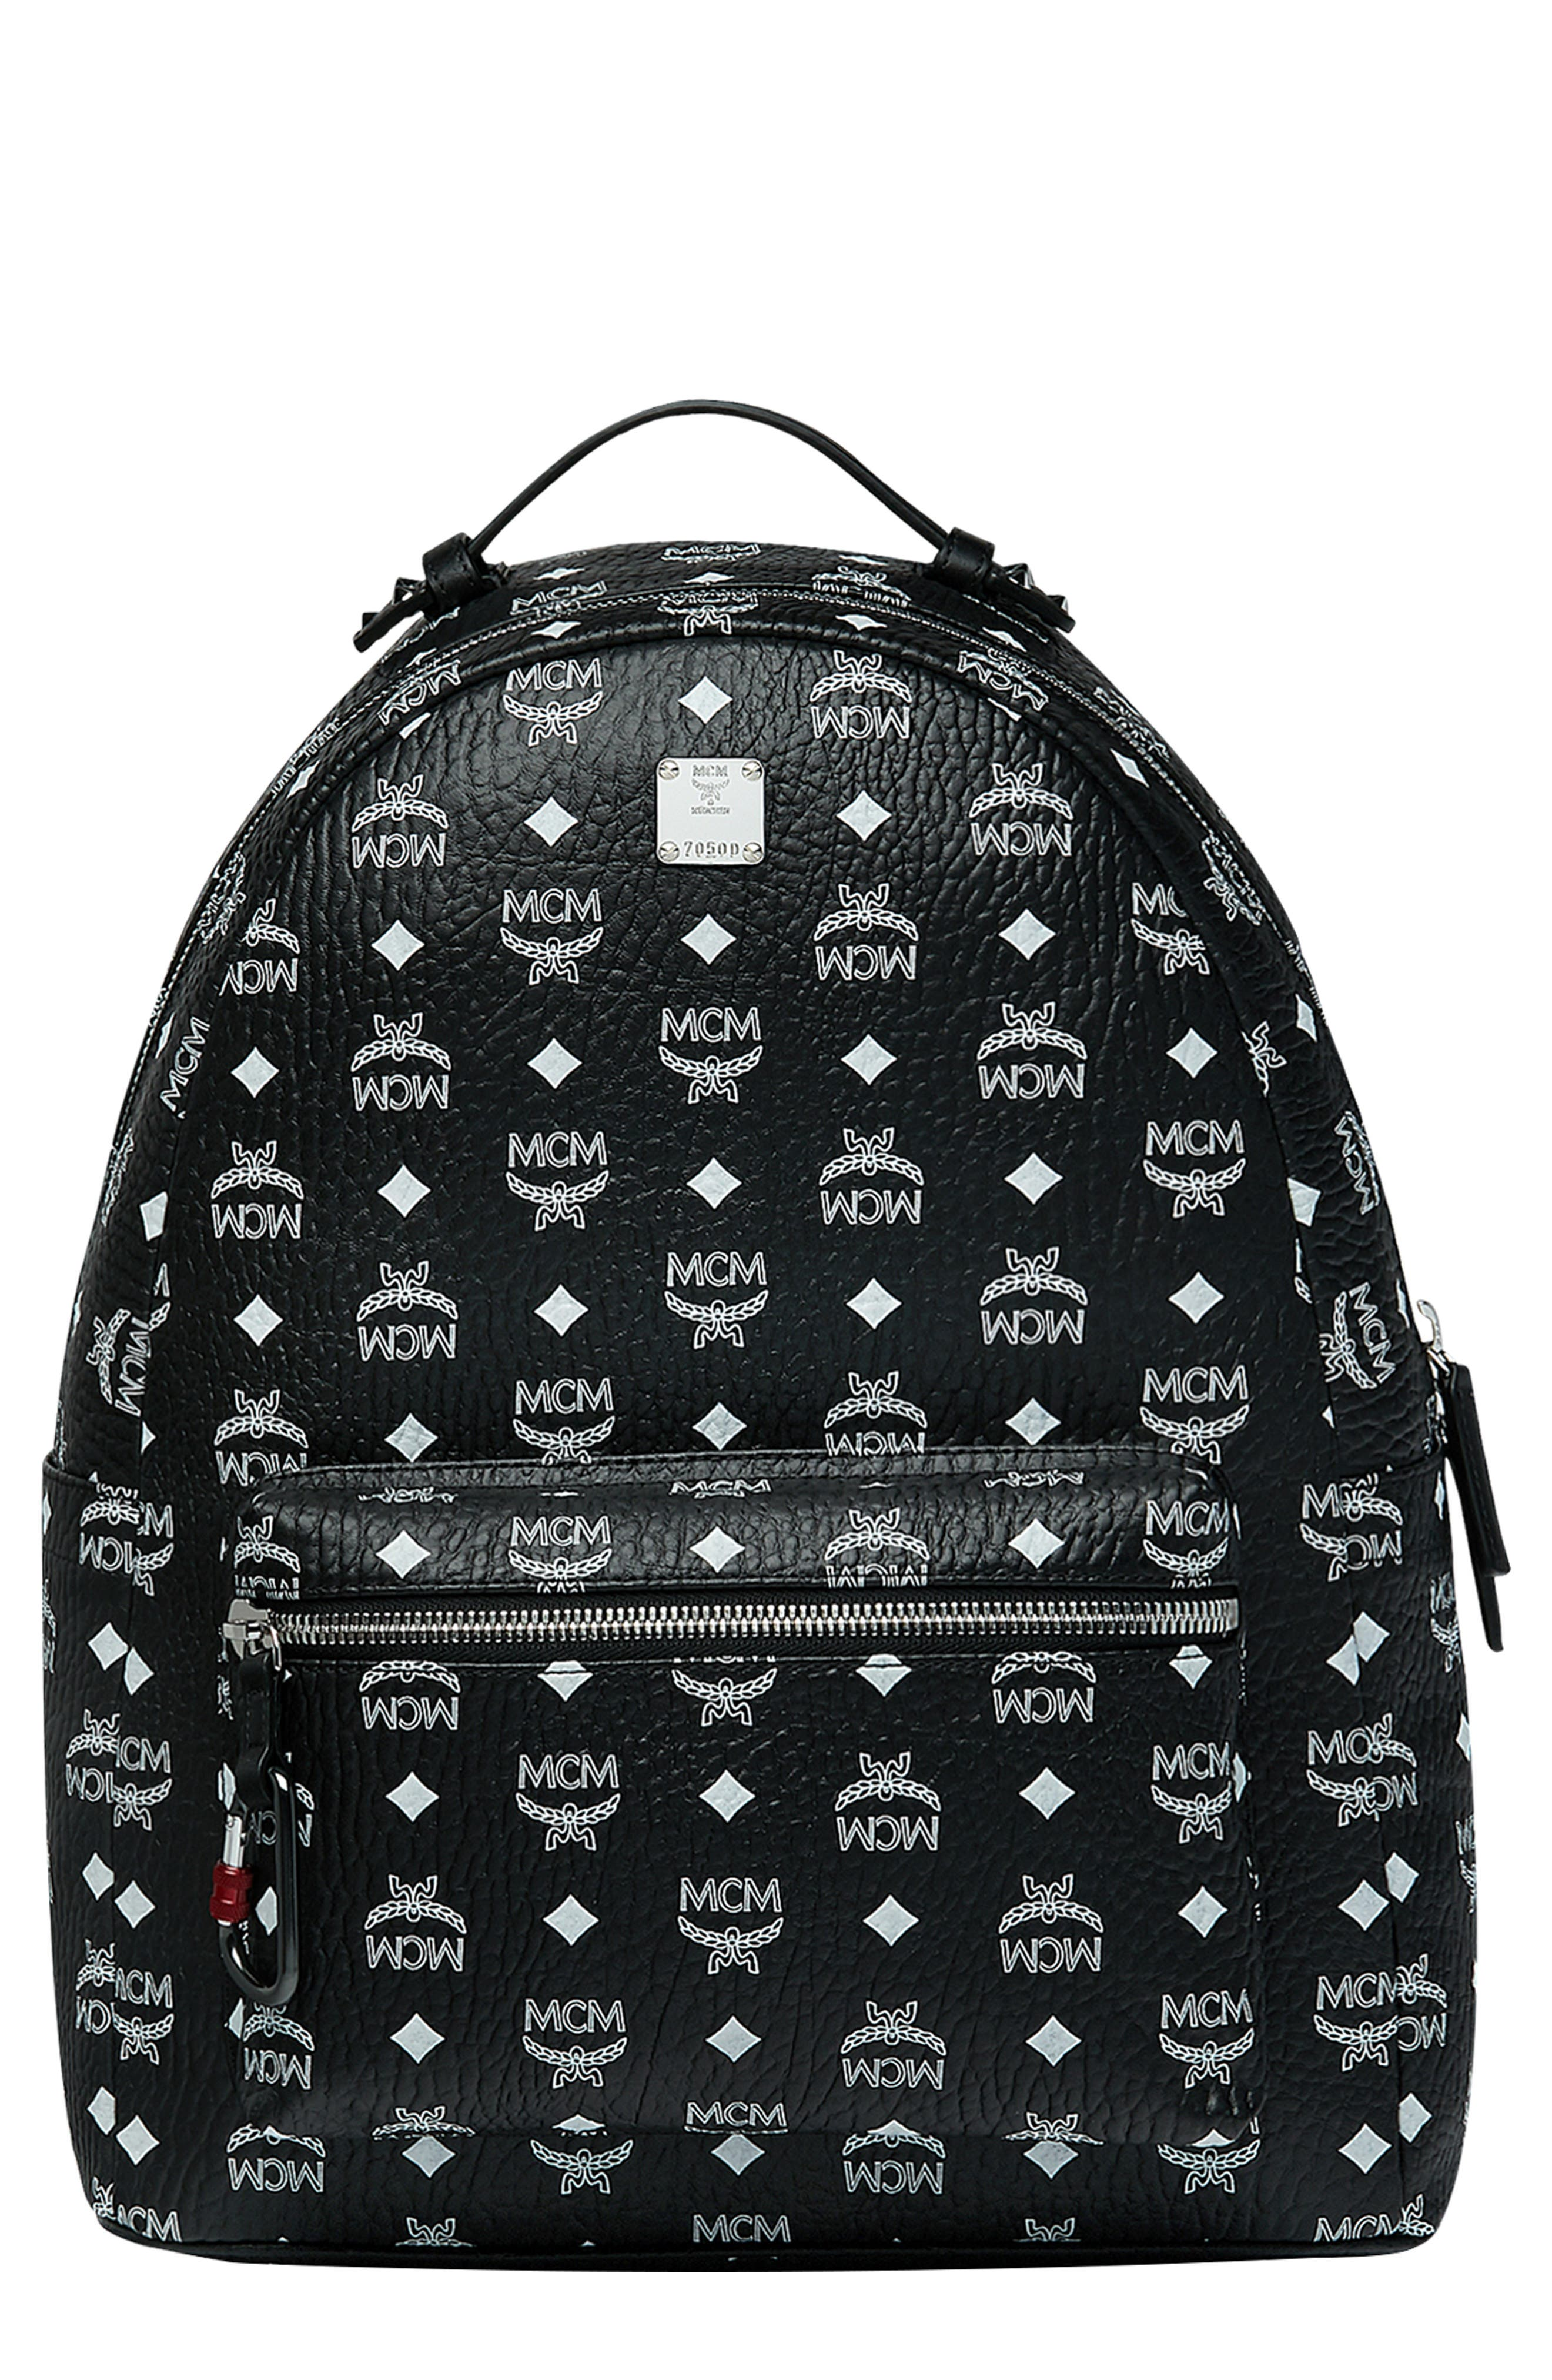 MCM Stark Visetos Faux Leather Backpack, Main, color, WHITE LOGO BLACK